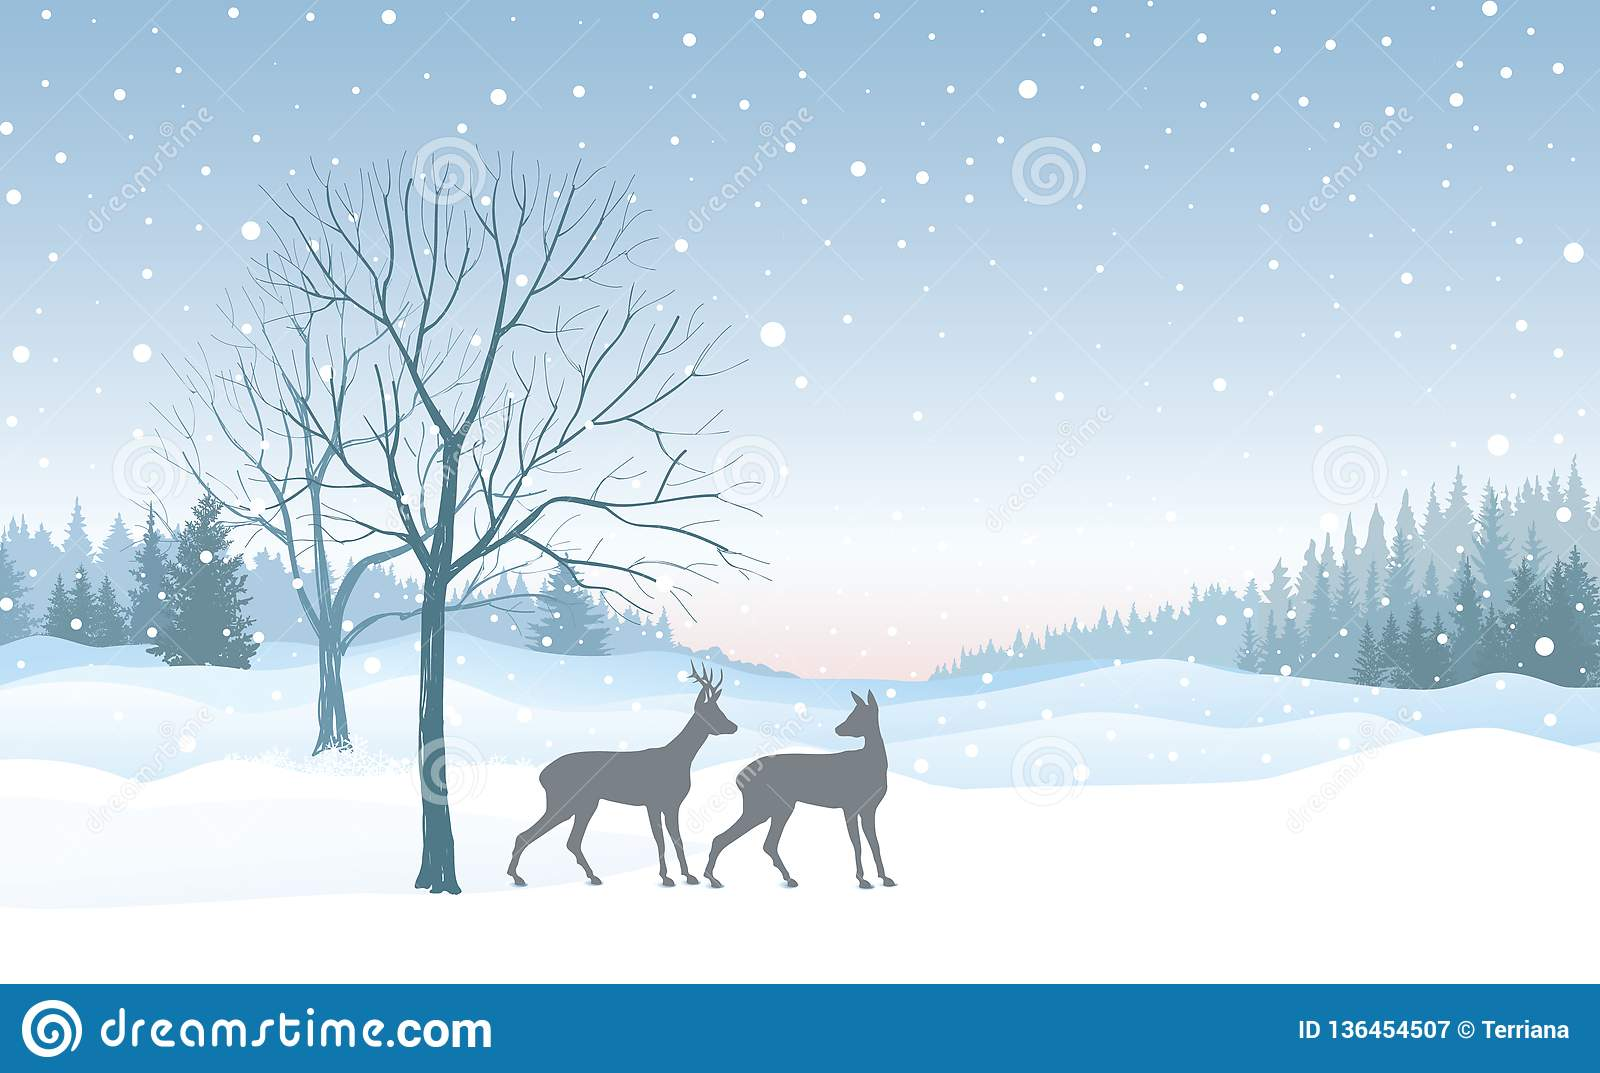 Christmas background. Snow winter landscape skyline with deers. Merry Christmas wallpaper design